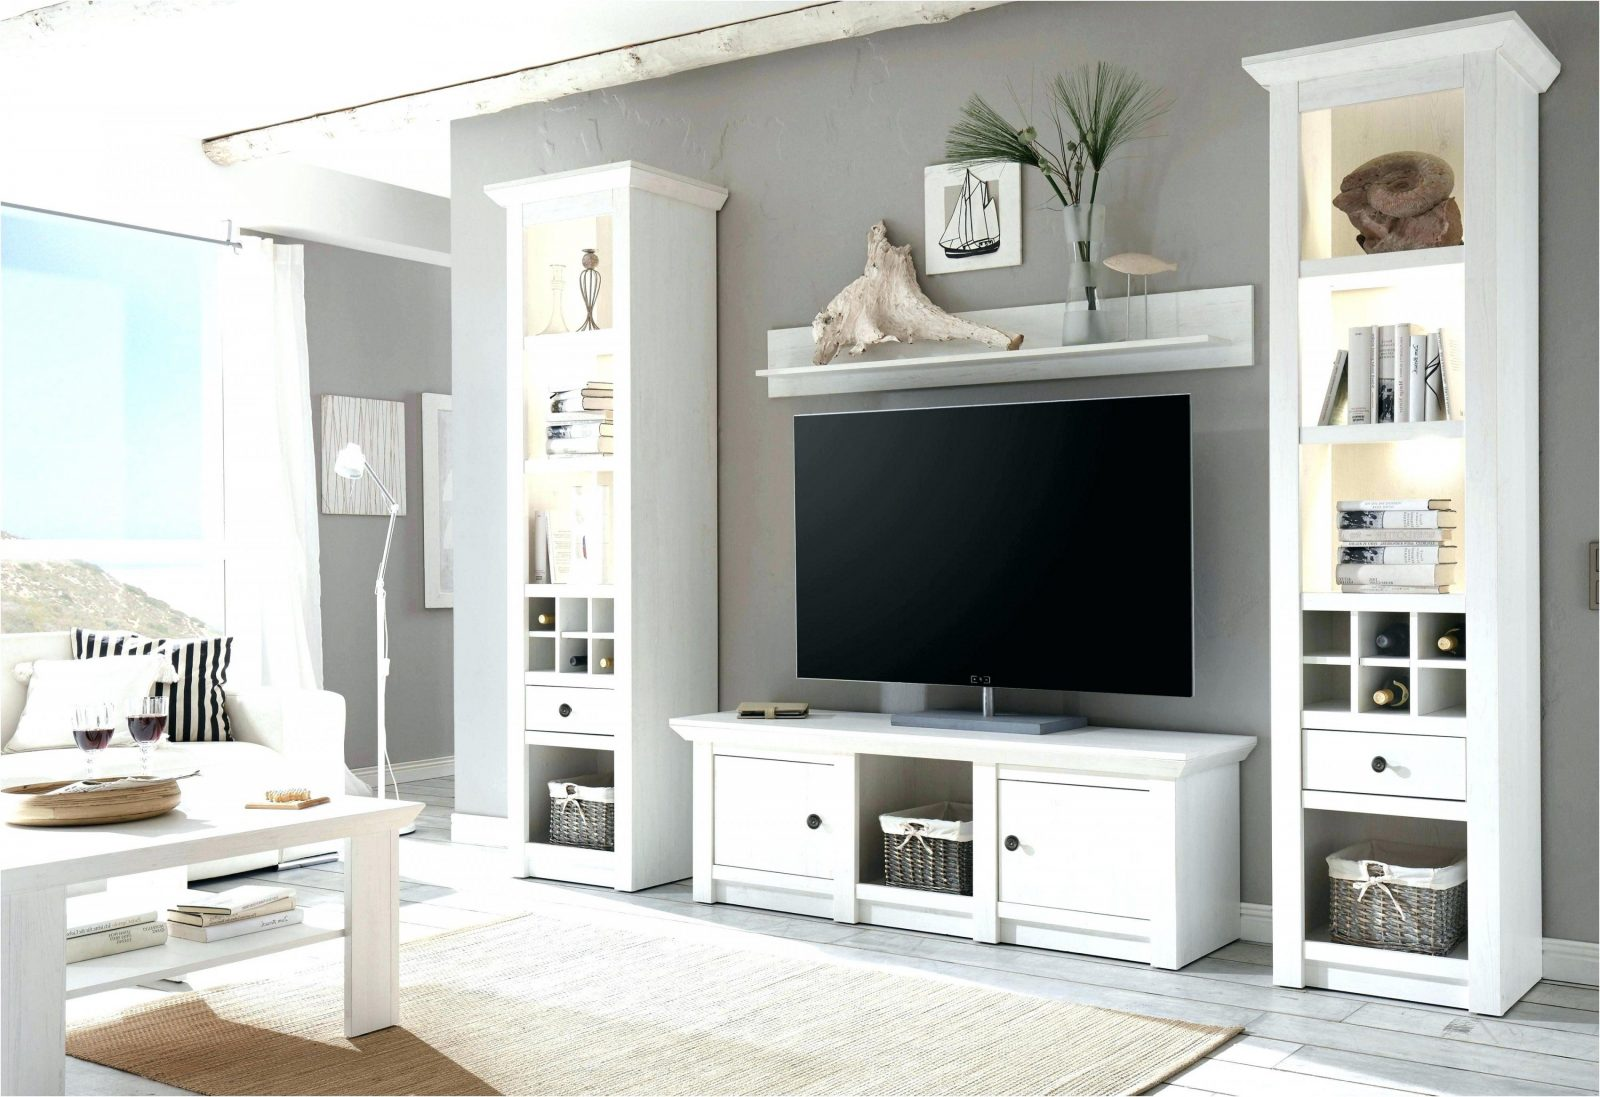 wohnwand auf raten kaufen haus design ideen. Black Bedroom Furniture Sets. Home Design Ideas